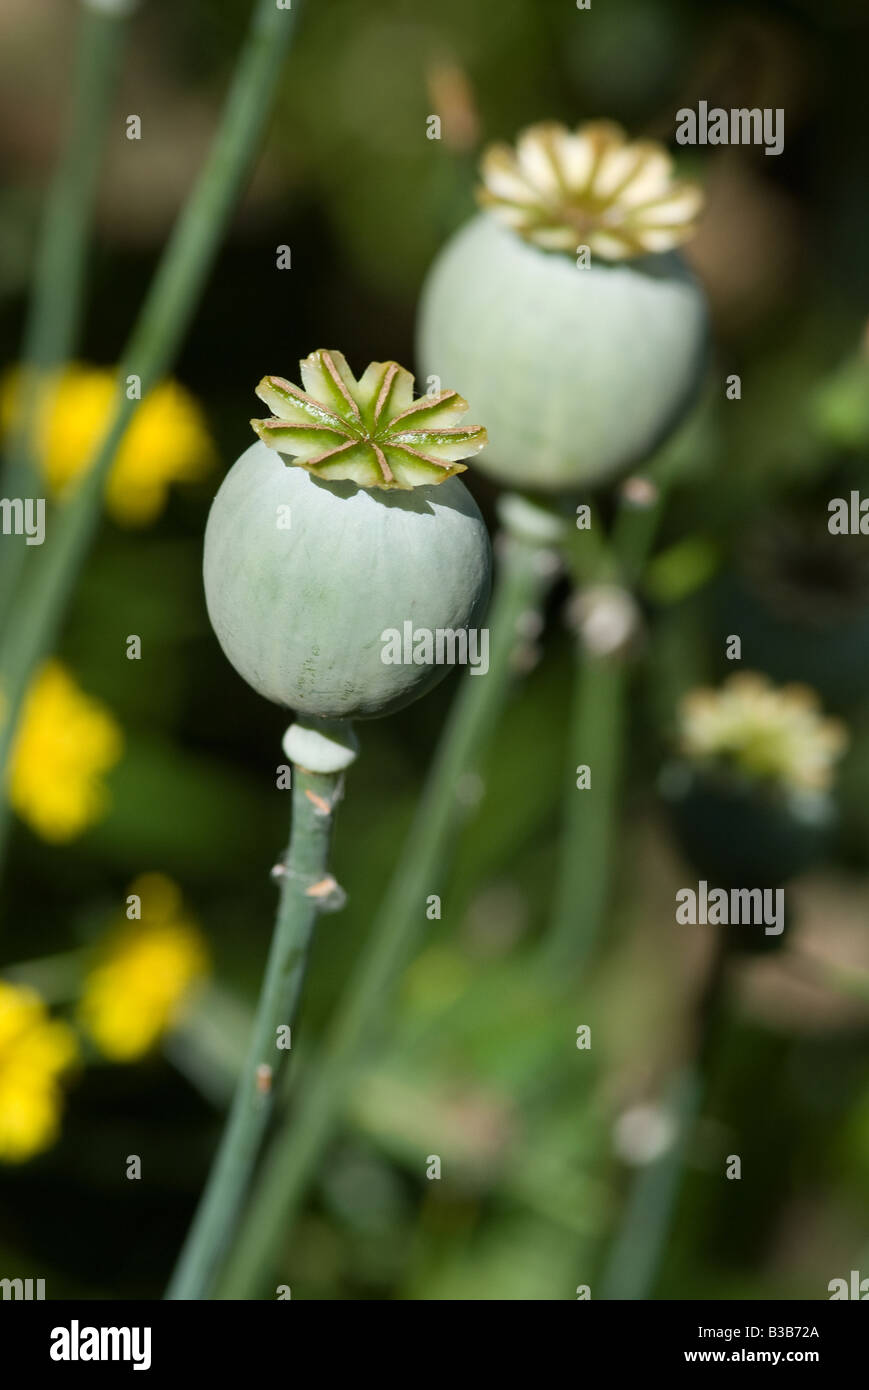 Opium Poppy Seed Heads After Flowering In A Cheshire Garden England